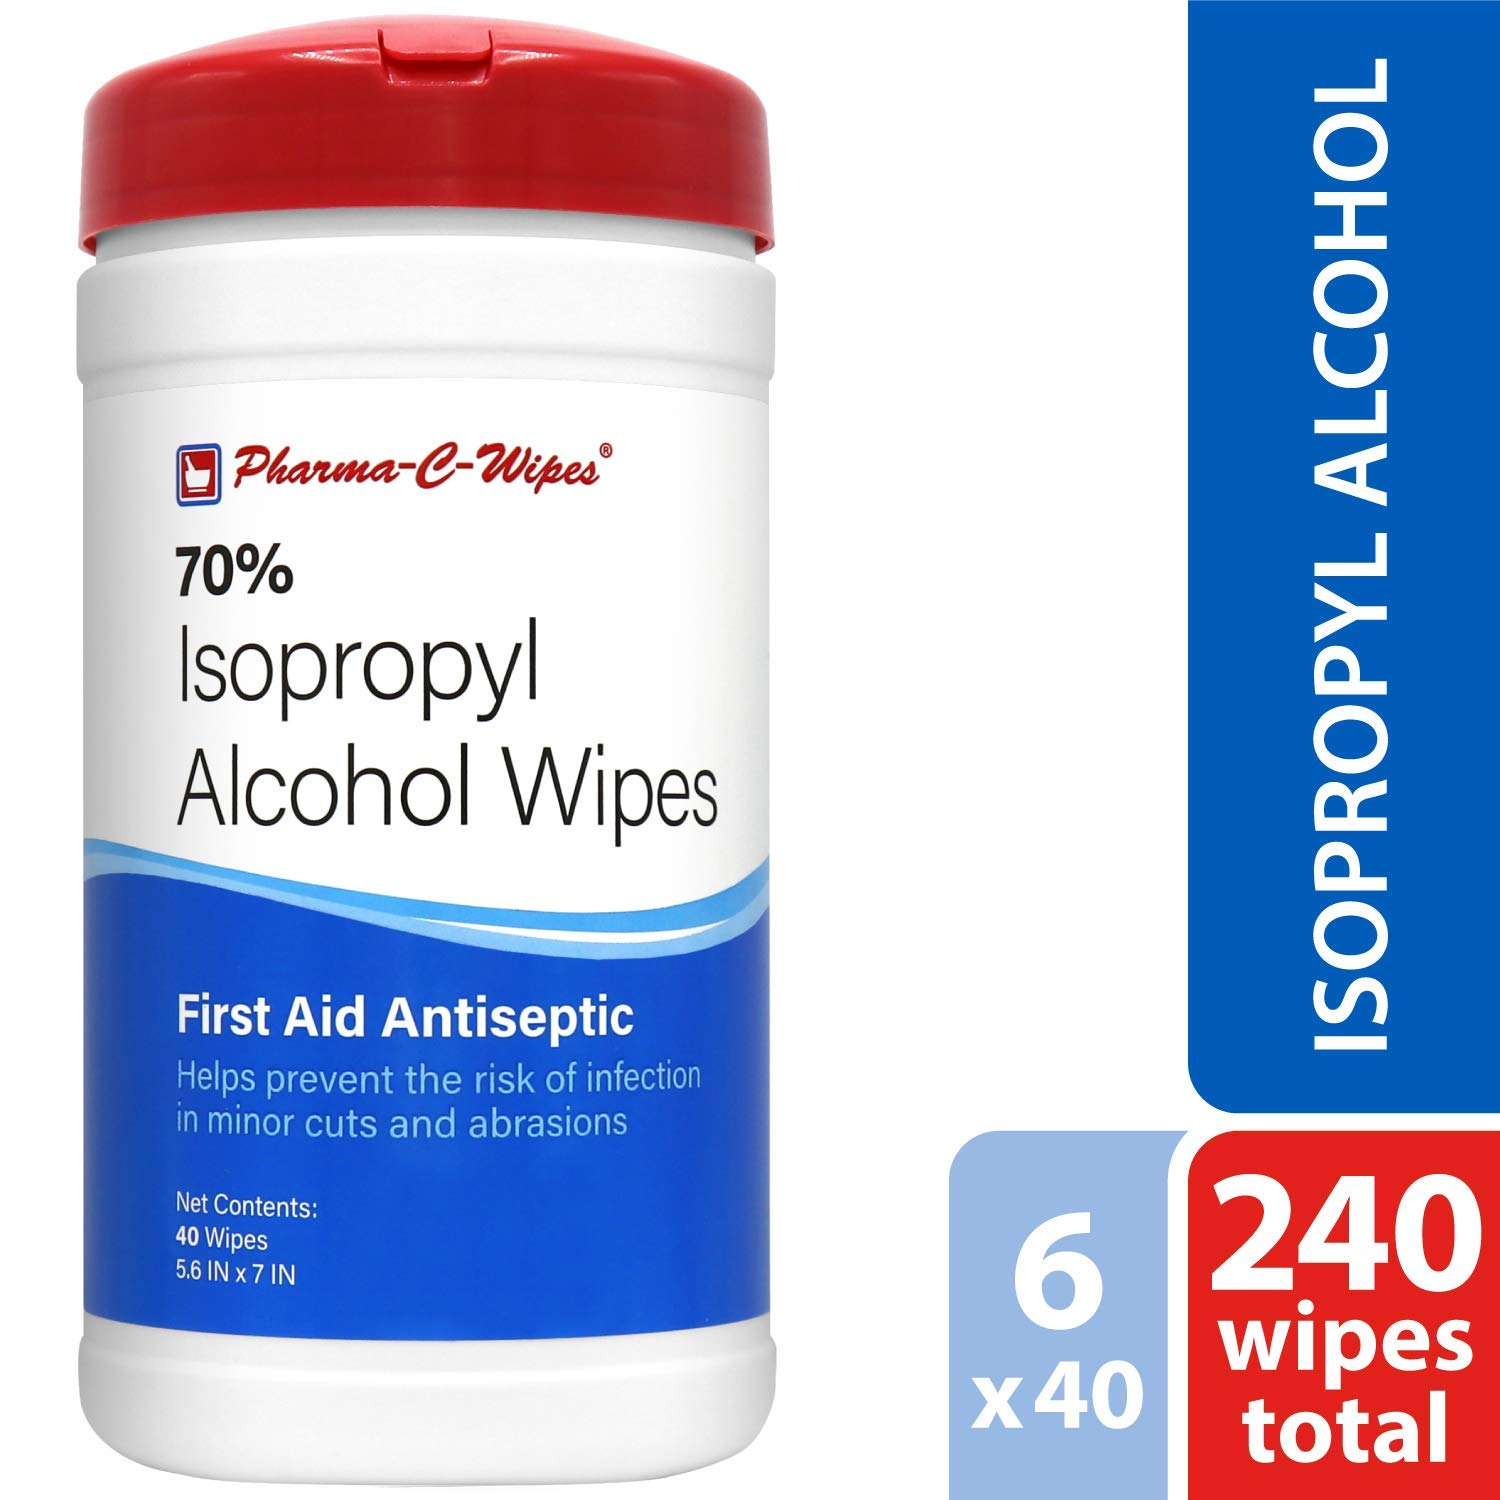 Pharma-C-Wipes 70% Isopropyl Alcohol Wipes (Case of 6 Canisters) by Pharma-C-Wipes